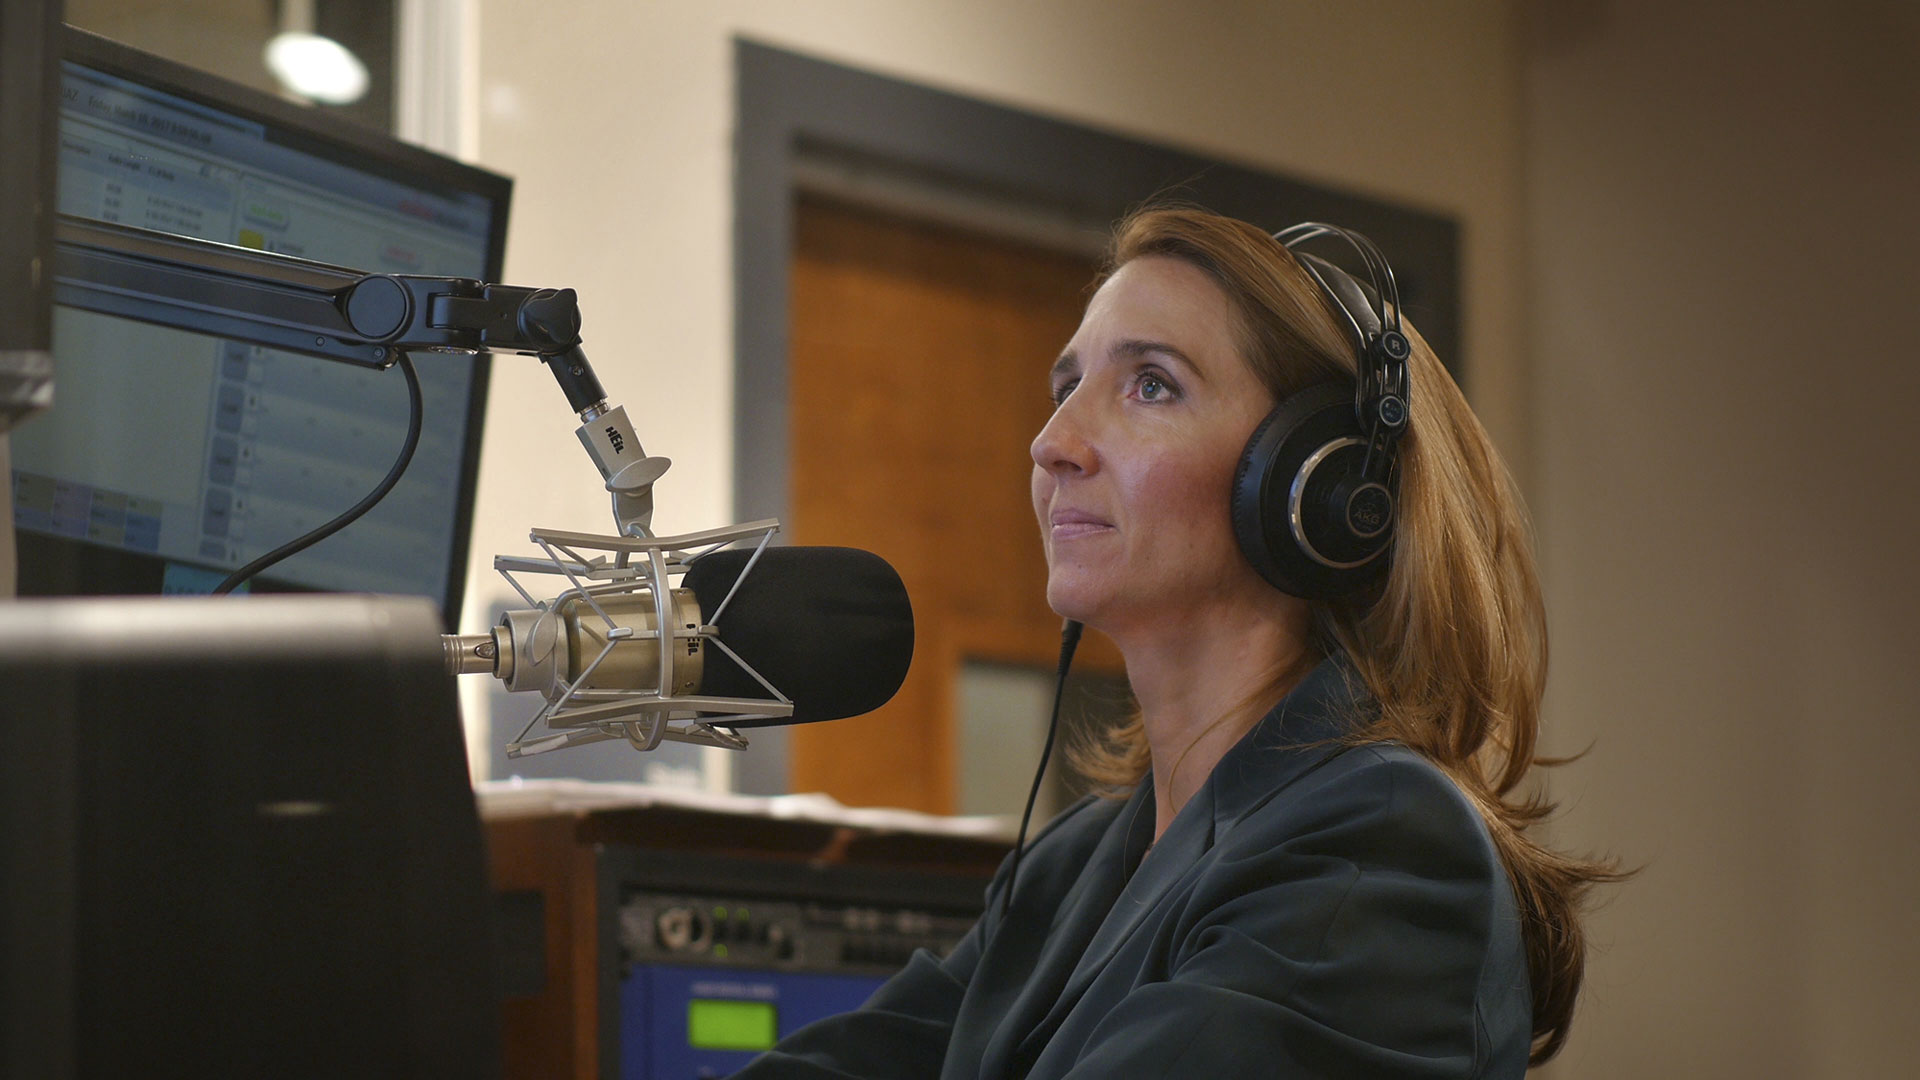 NPR 89.1 Morning Announcer, Nicole Cox on the air.